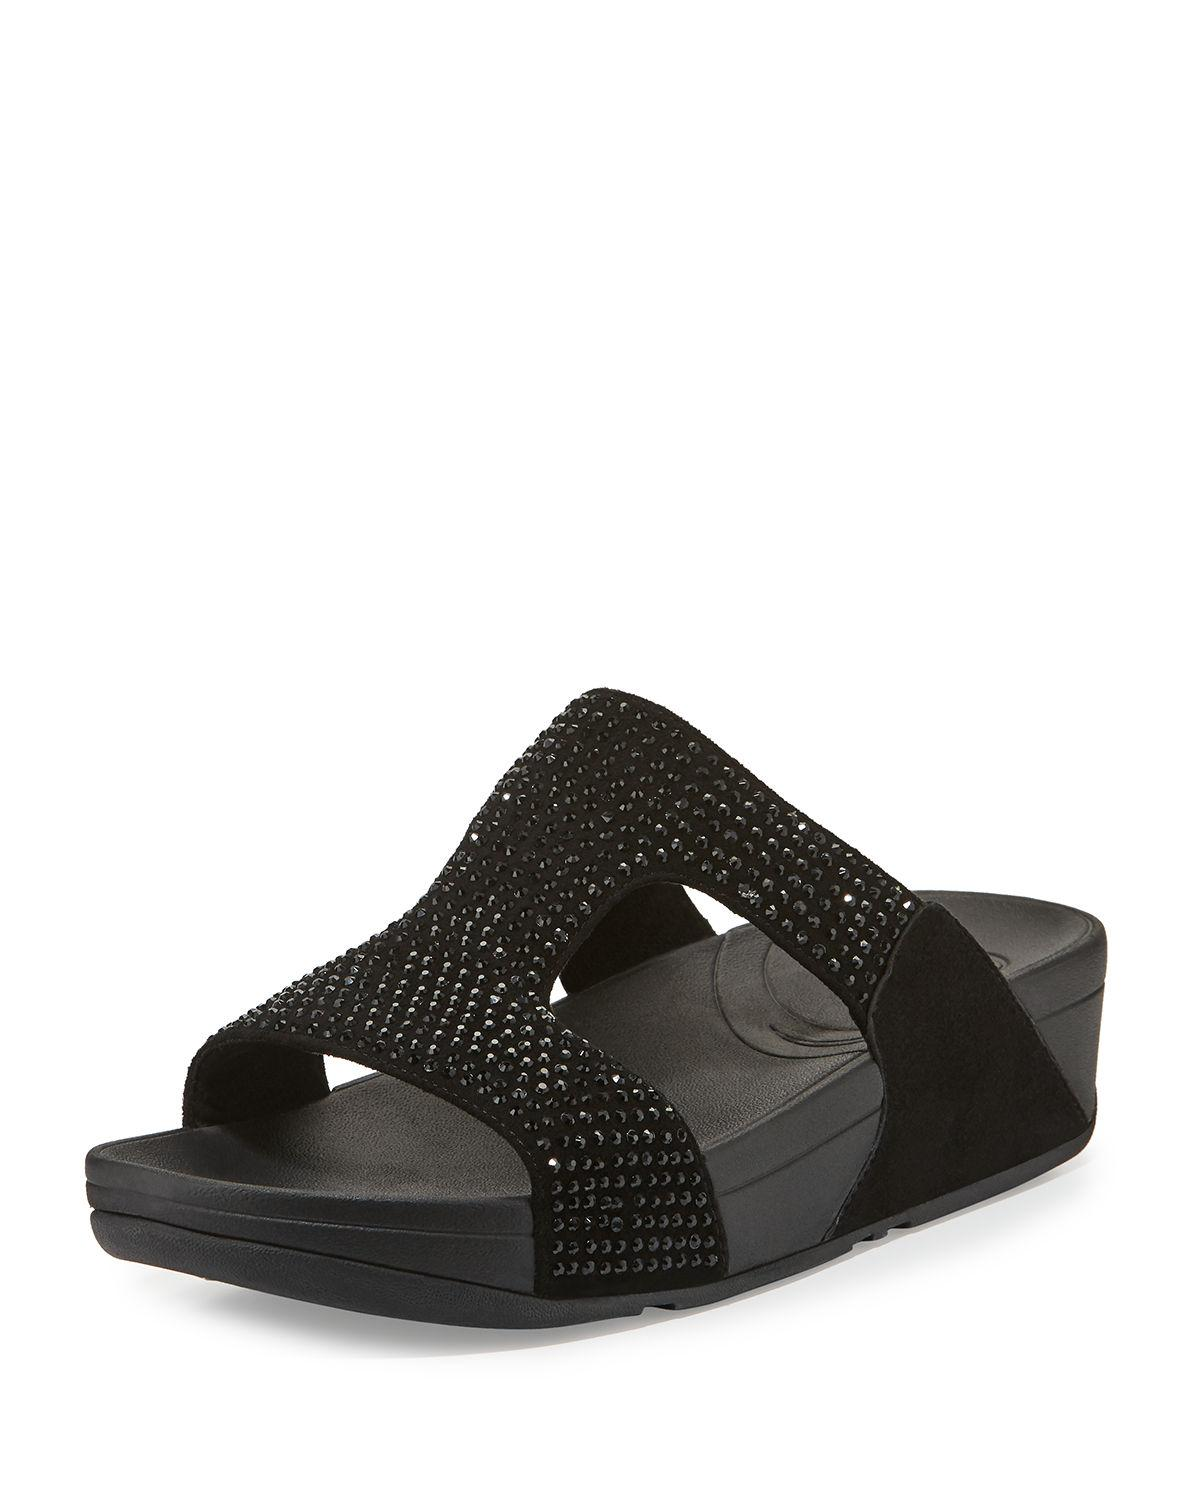 addc0a005 Fitflop Womens Rokkit Crystal Slide Sandal